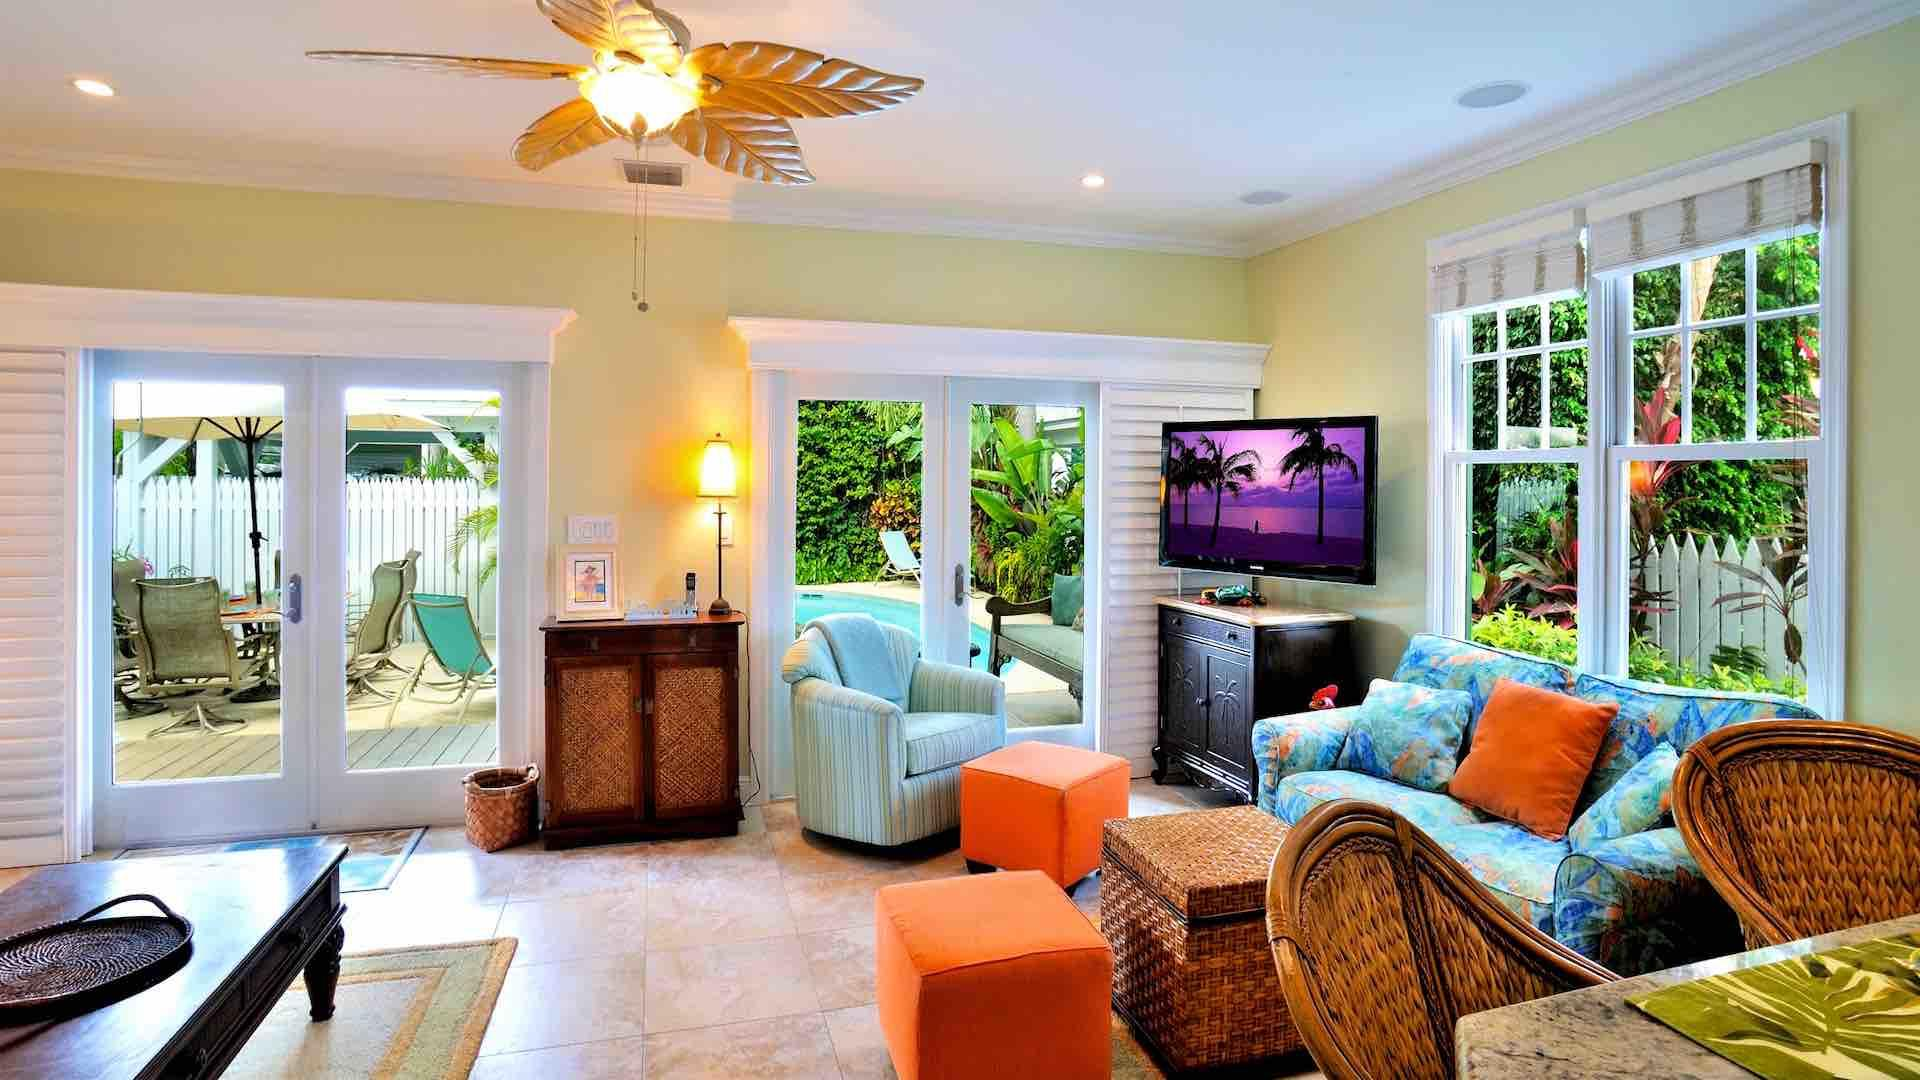 The living area has three sets of French doors to let in those tropical breezes...